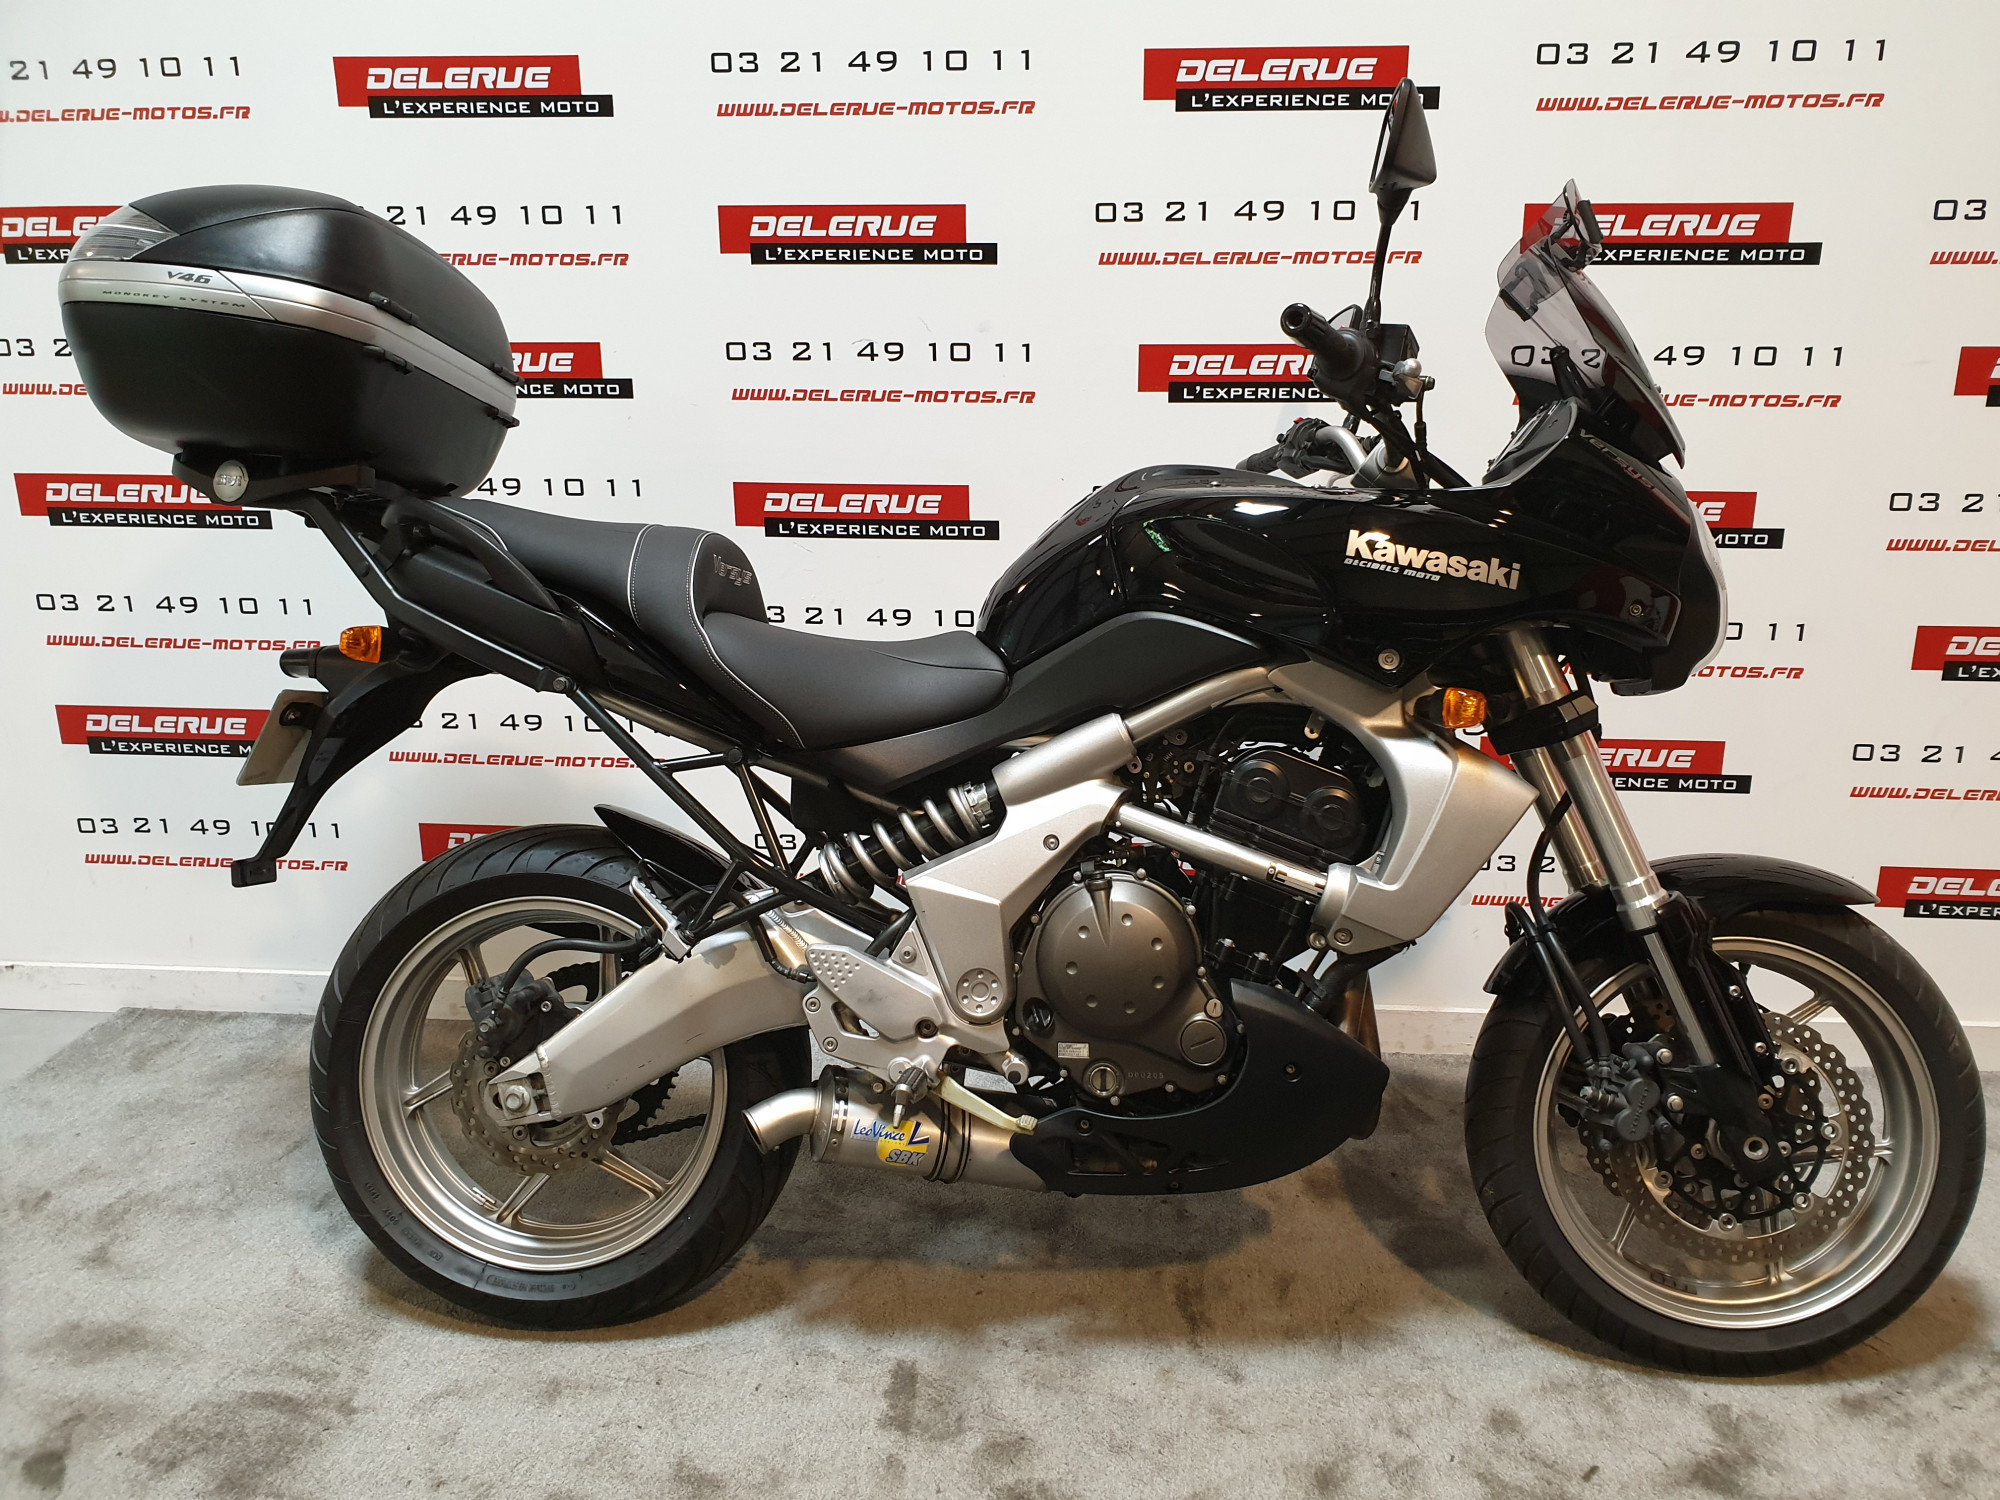 photo de KAWASAKI VERSYS 650 occasion de couleur  en vente à Billy Montigny n°1